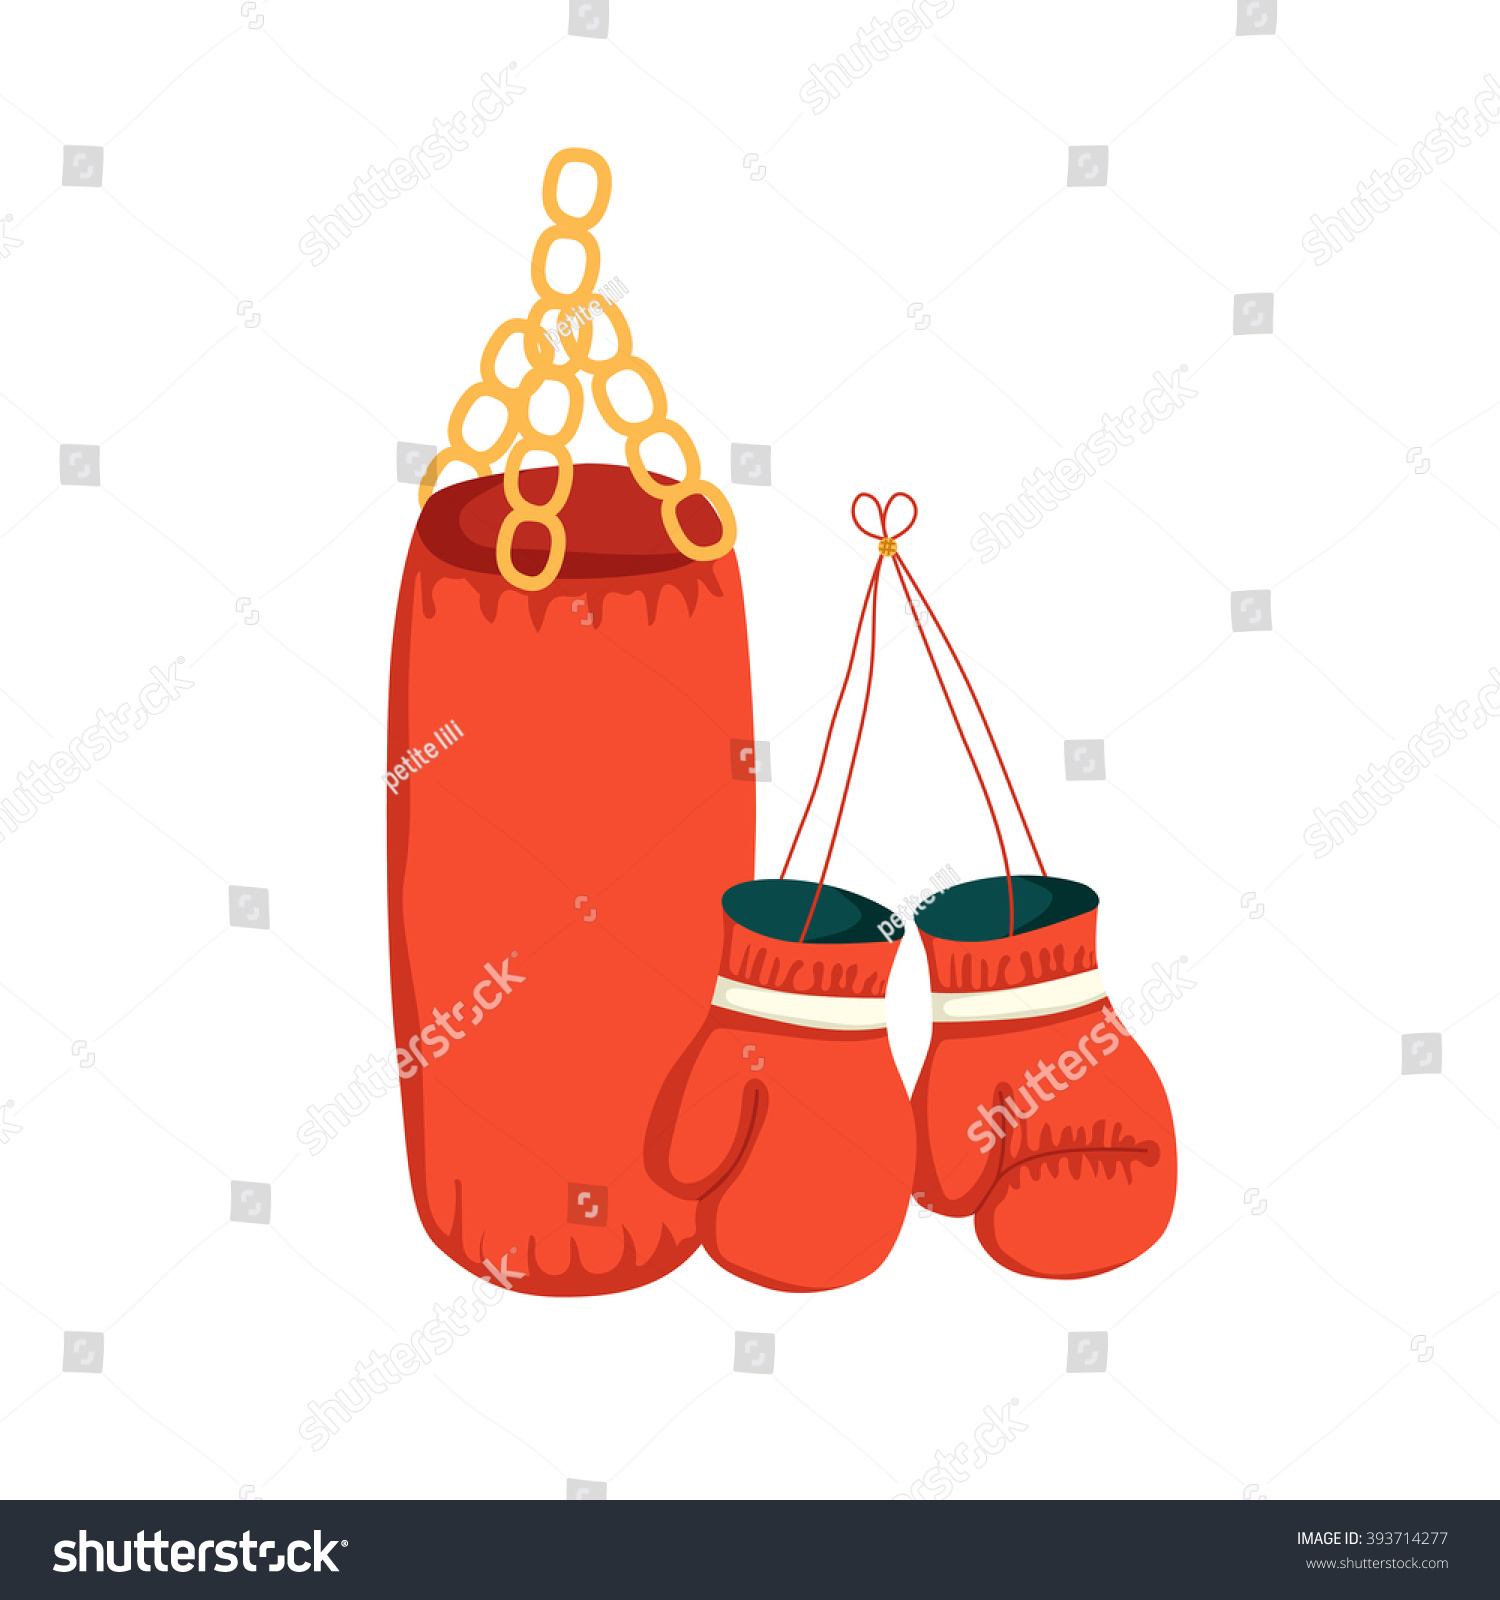 punching bag clipart - photo #44